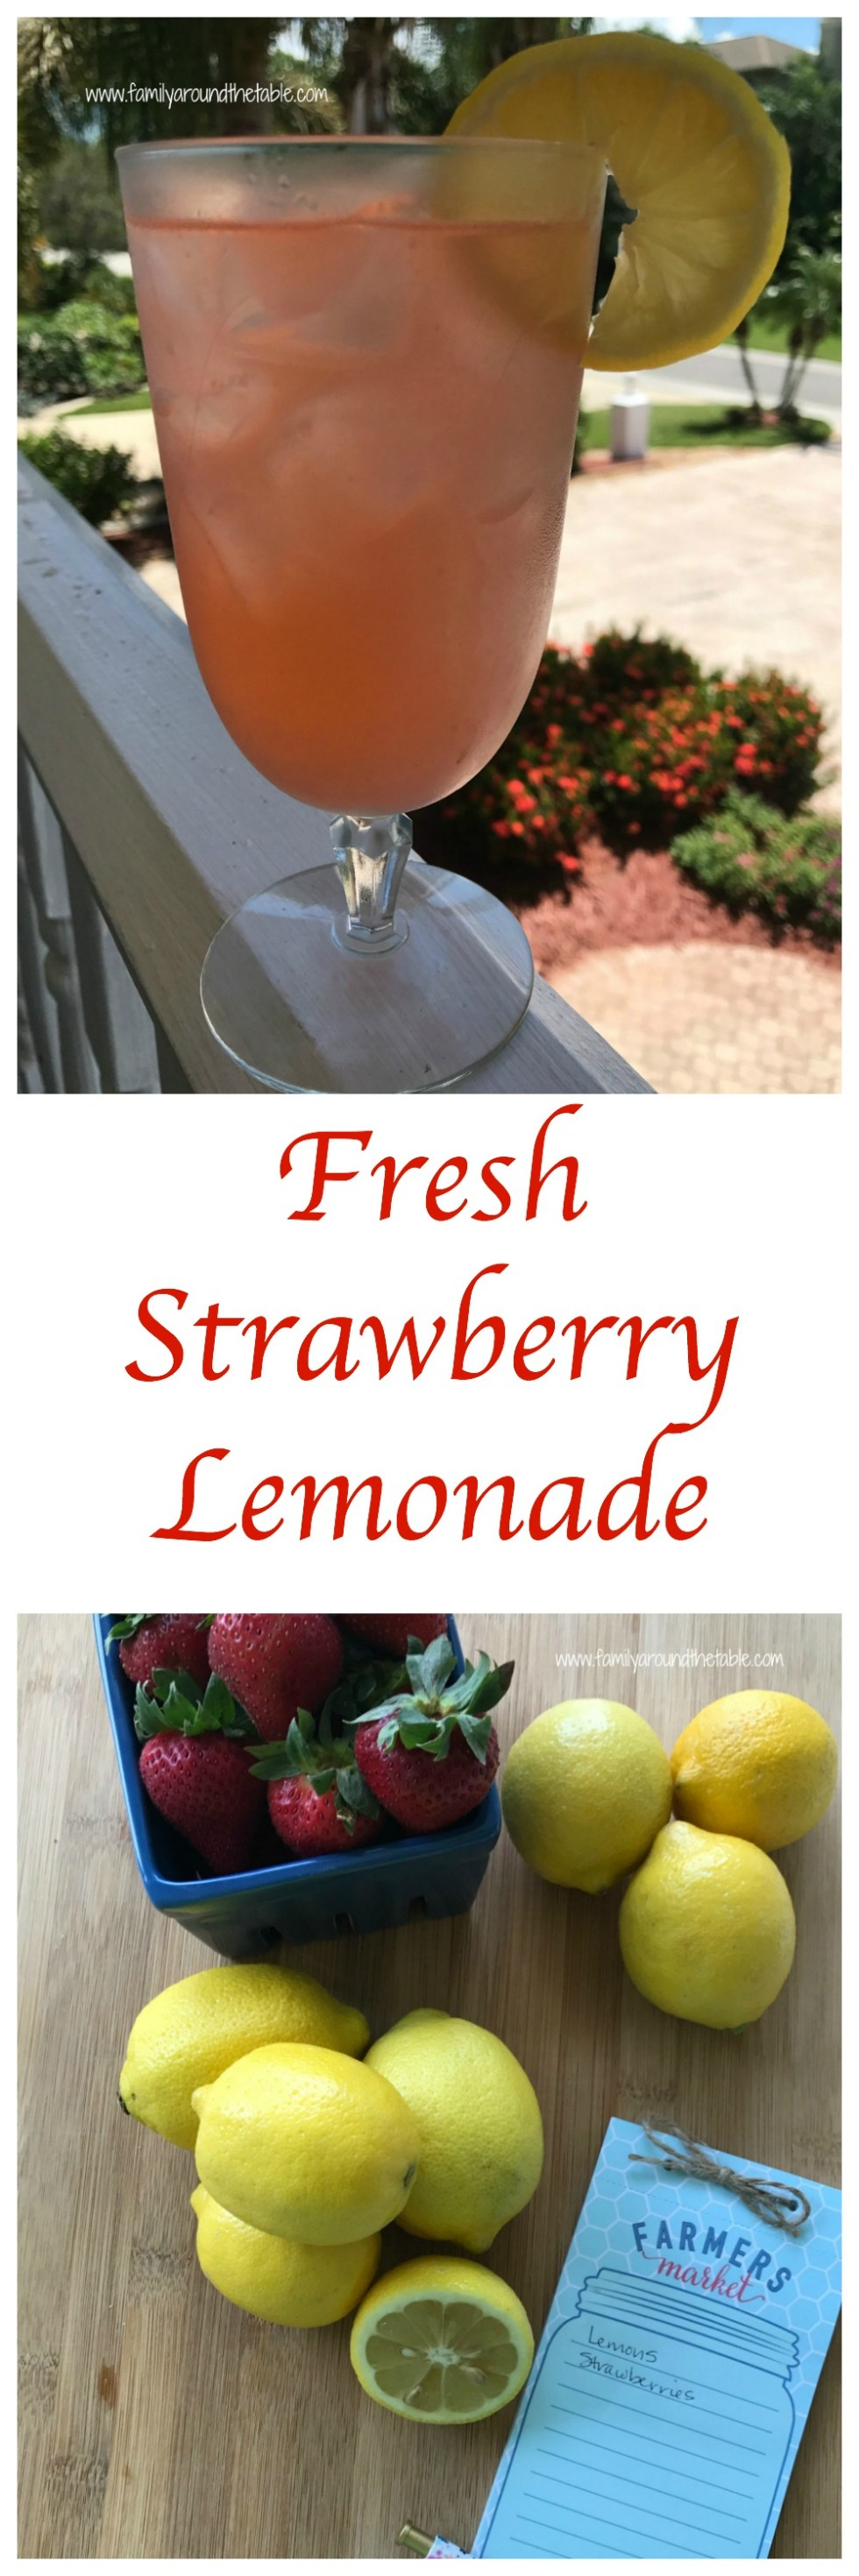 Make a pitcher of fresh strawberry lemonade for a hot summer day.